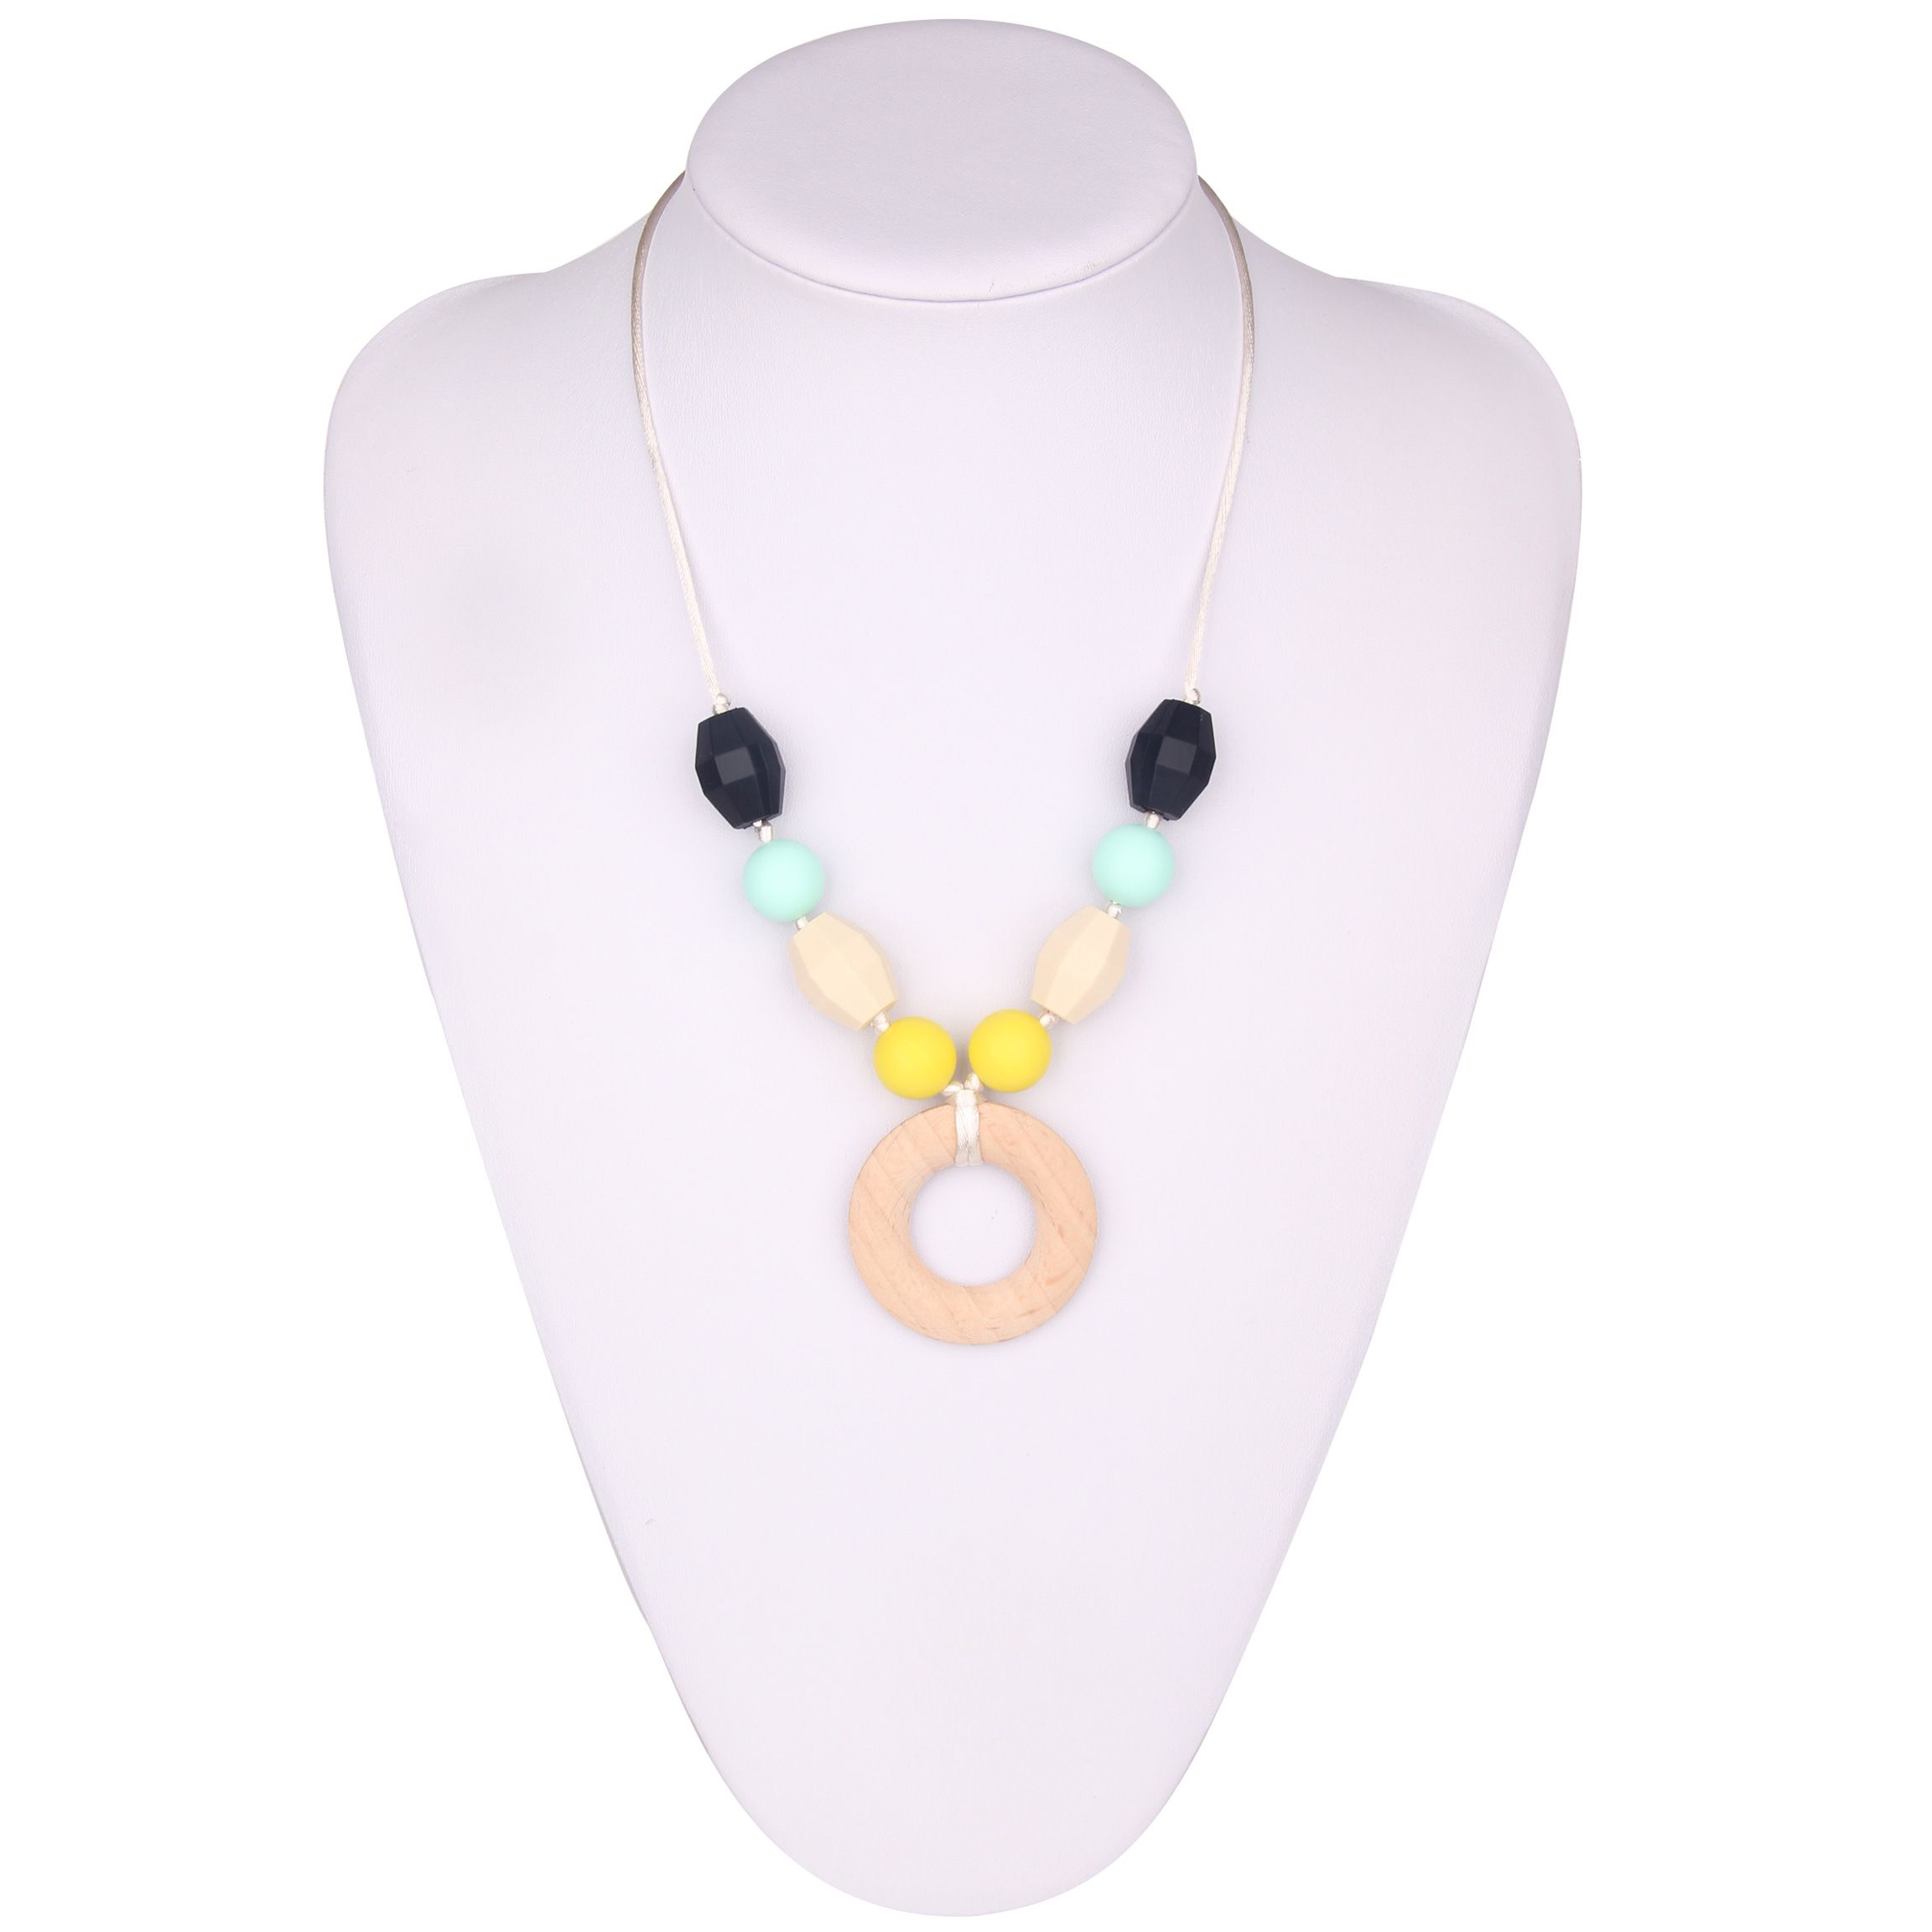 Bpa Free Silicone Necklace Wholesale Silicone Teething